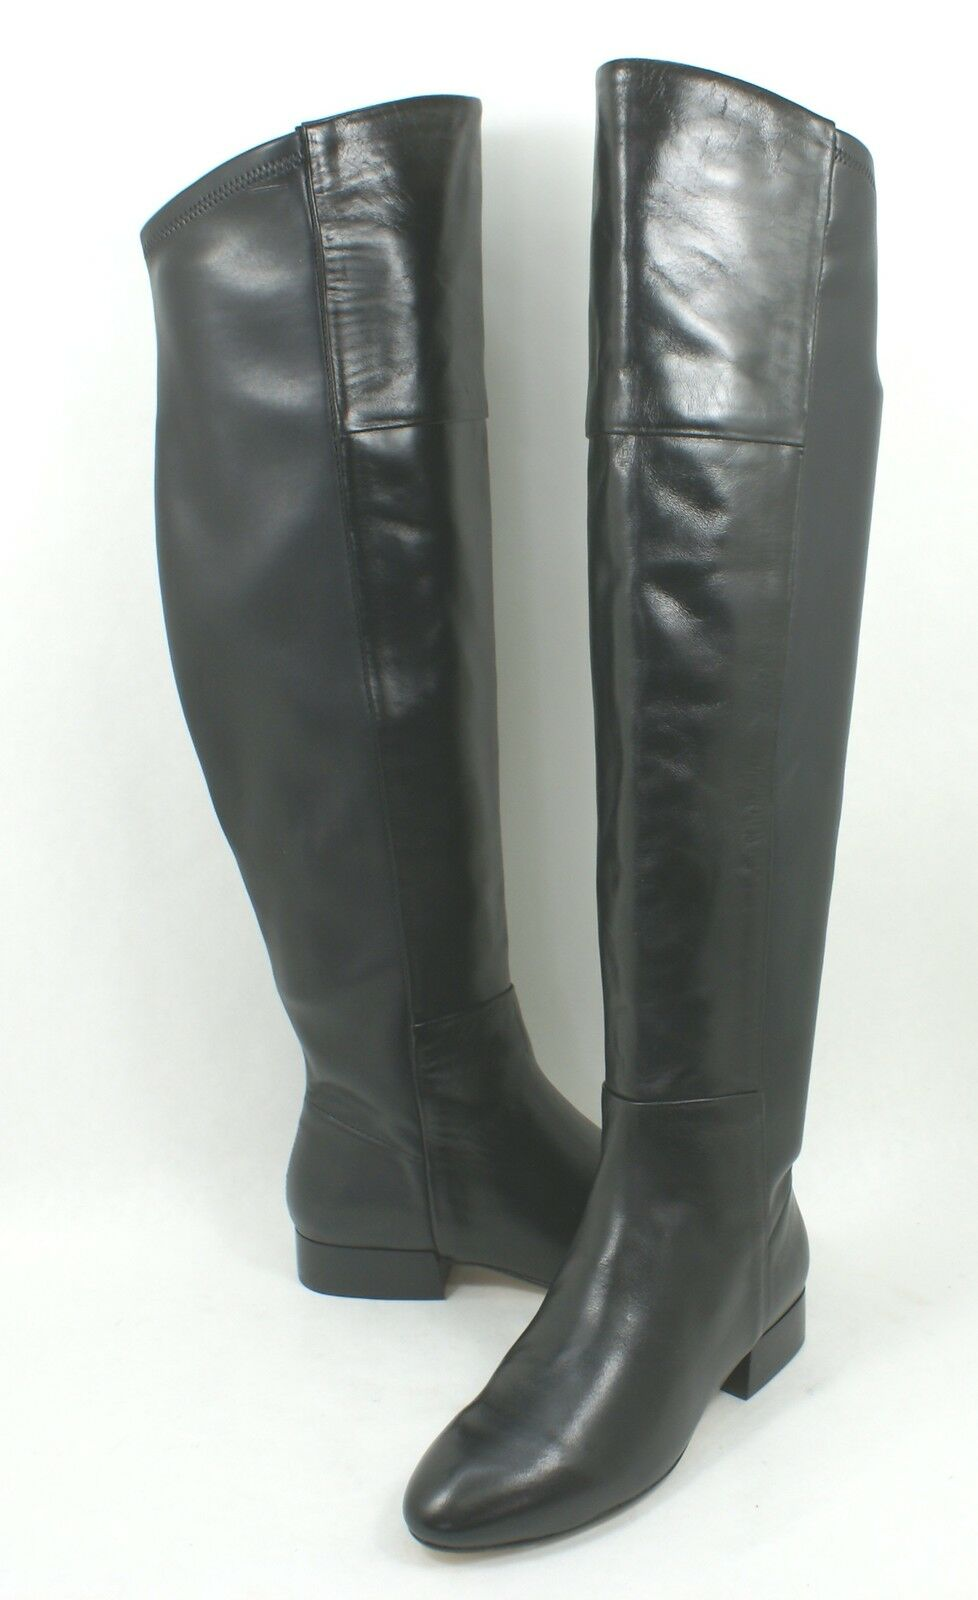 Joie 'Daymar' Over the Knee Boot Black Leather Size 6 OTK